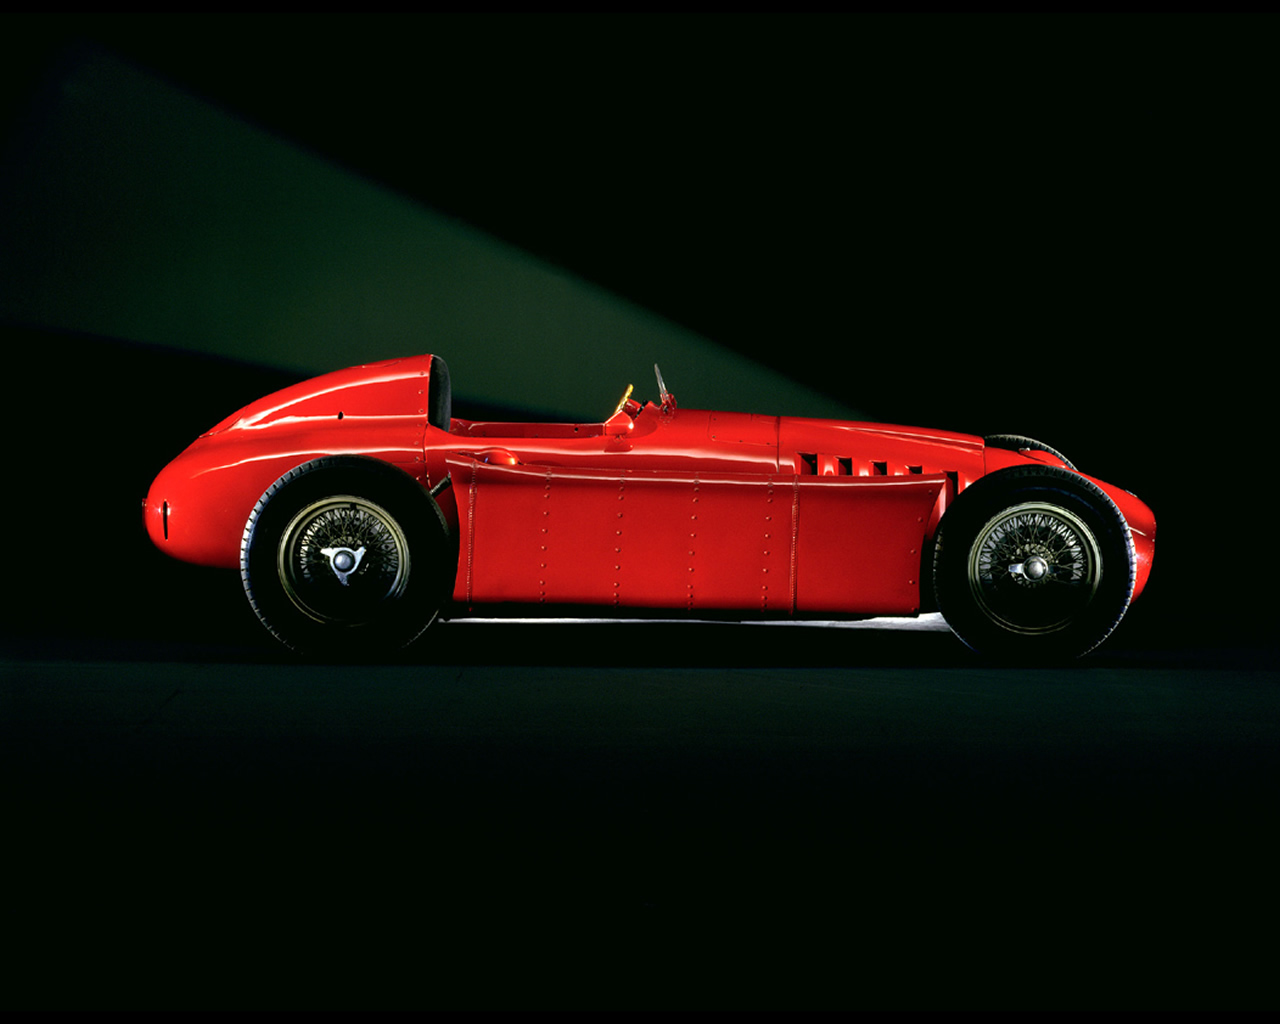 http://www.autoconcept-reviews.com/cars_reviews/lancia/lancia-d50/wallpapers/lancia-d50-f1-1954-1955-2.jpg